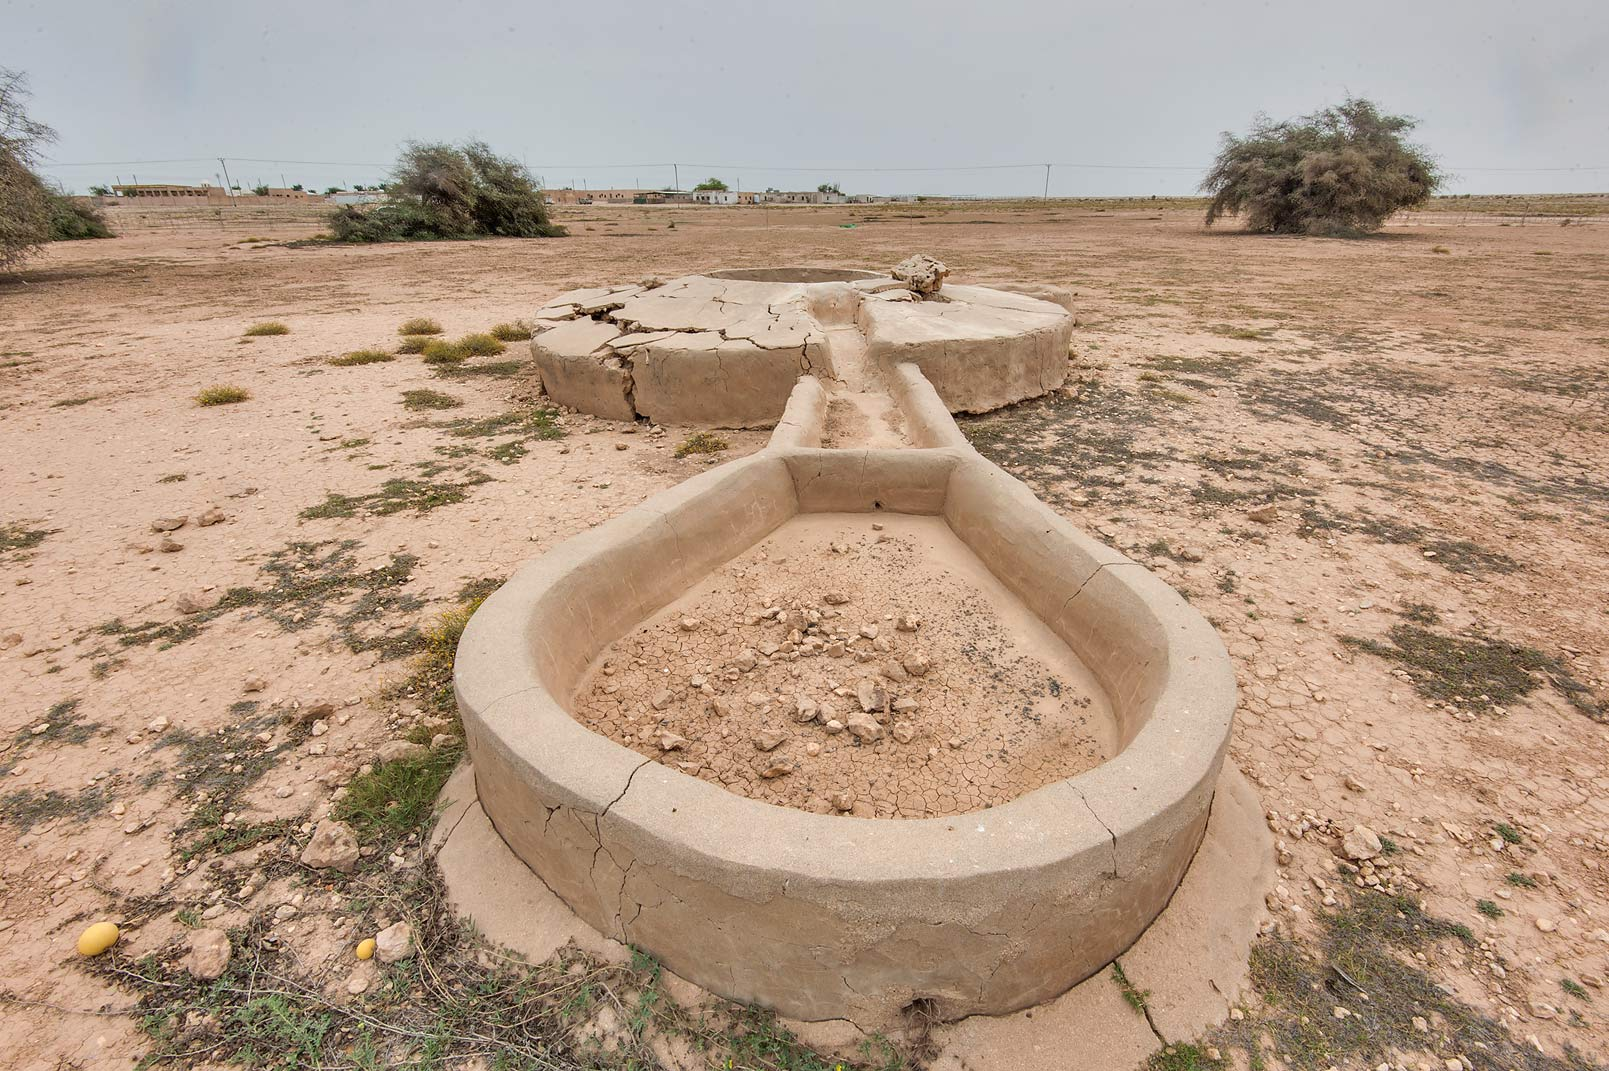 Cattle drinker section of Ain Numan water well in...Naim tribe, Nuaimiya). Northern Qatar